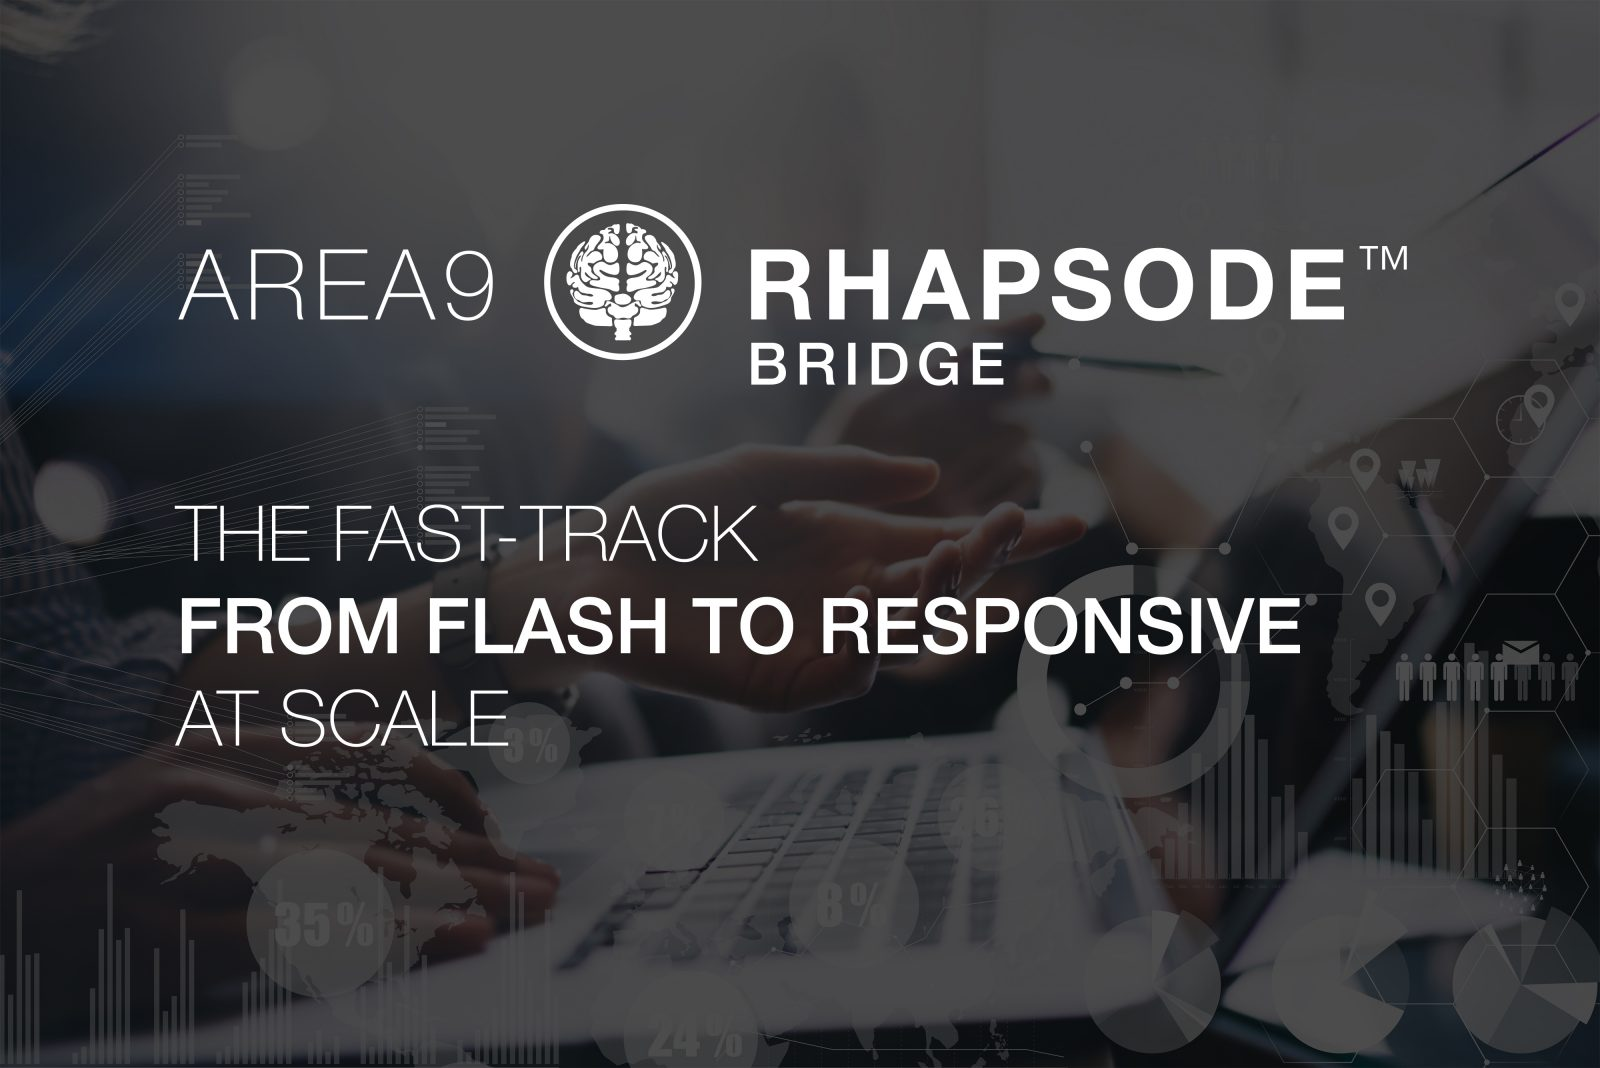 Area9 Lyceum Launches Rhapsode BRIDGE™ – A New, AI-Driven Solution for Adobe Flash Migration